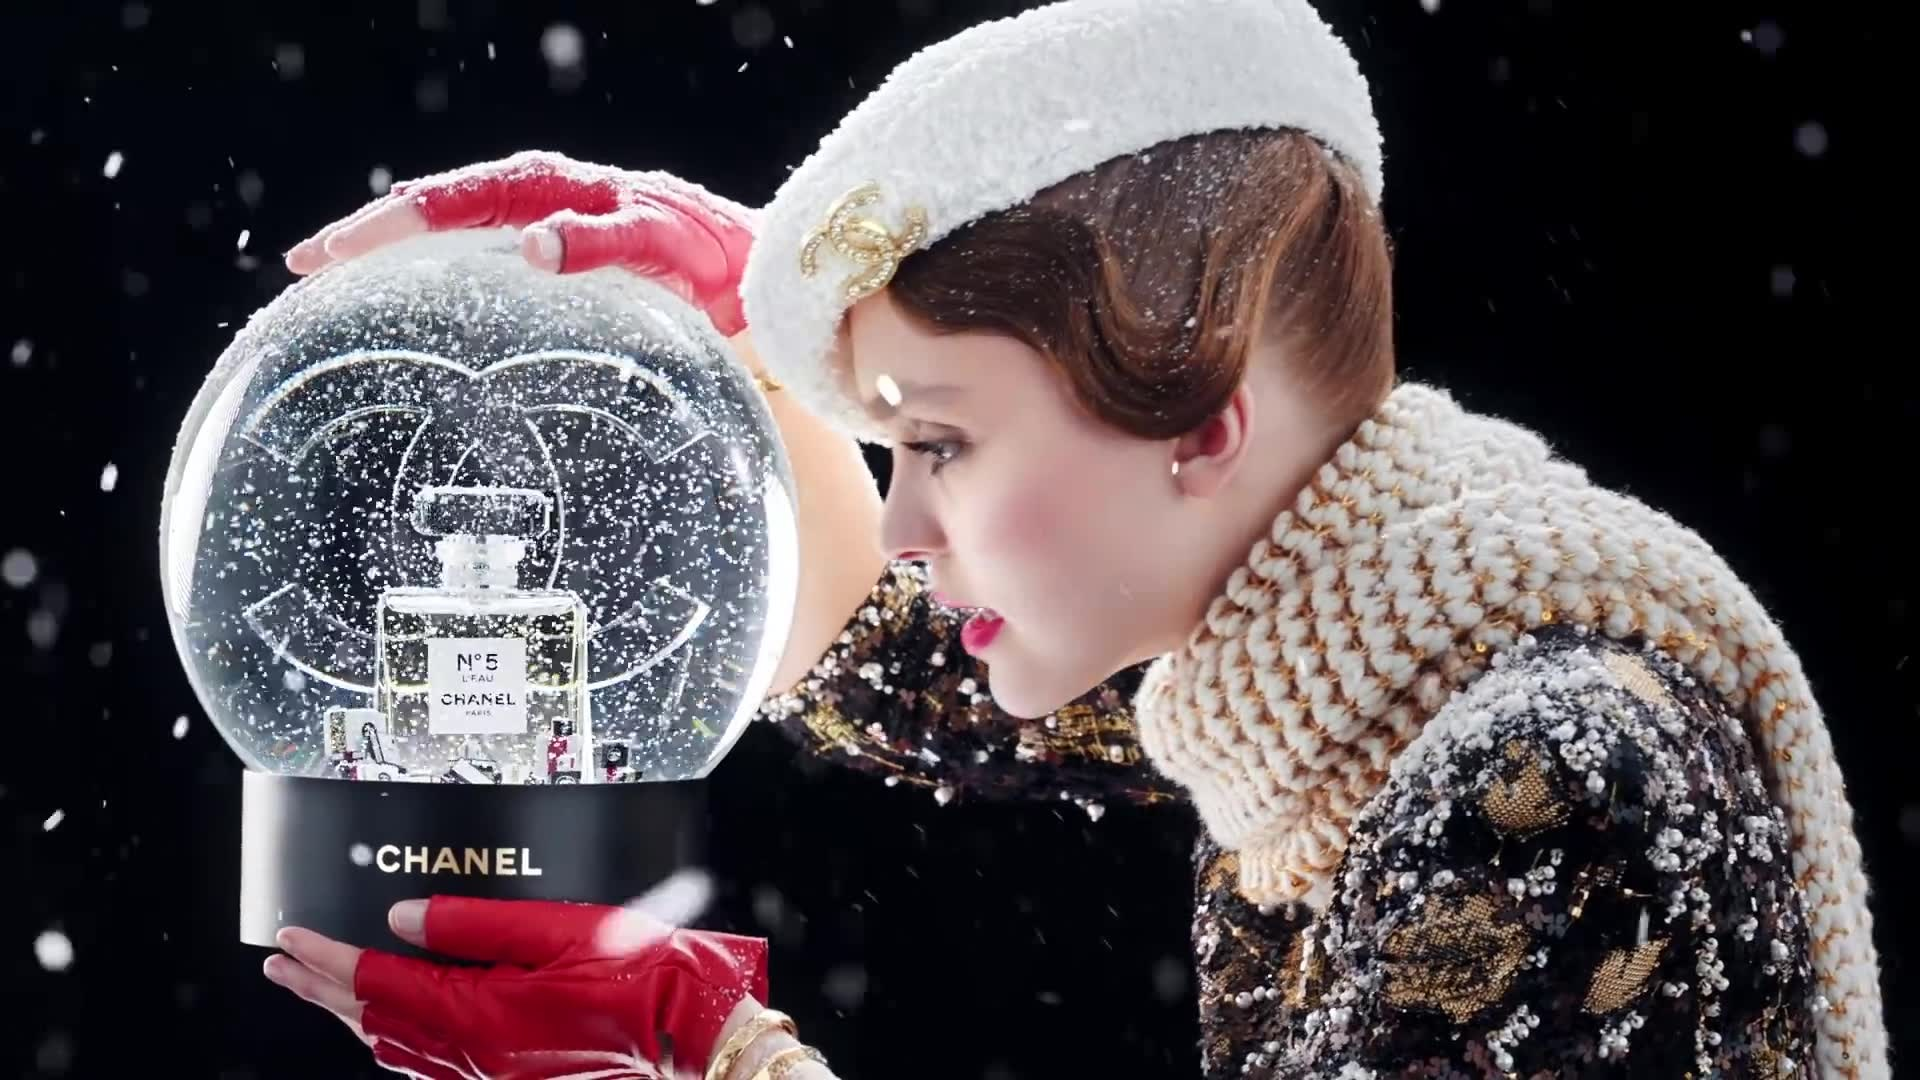 CHANEL x HOLIDAY